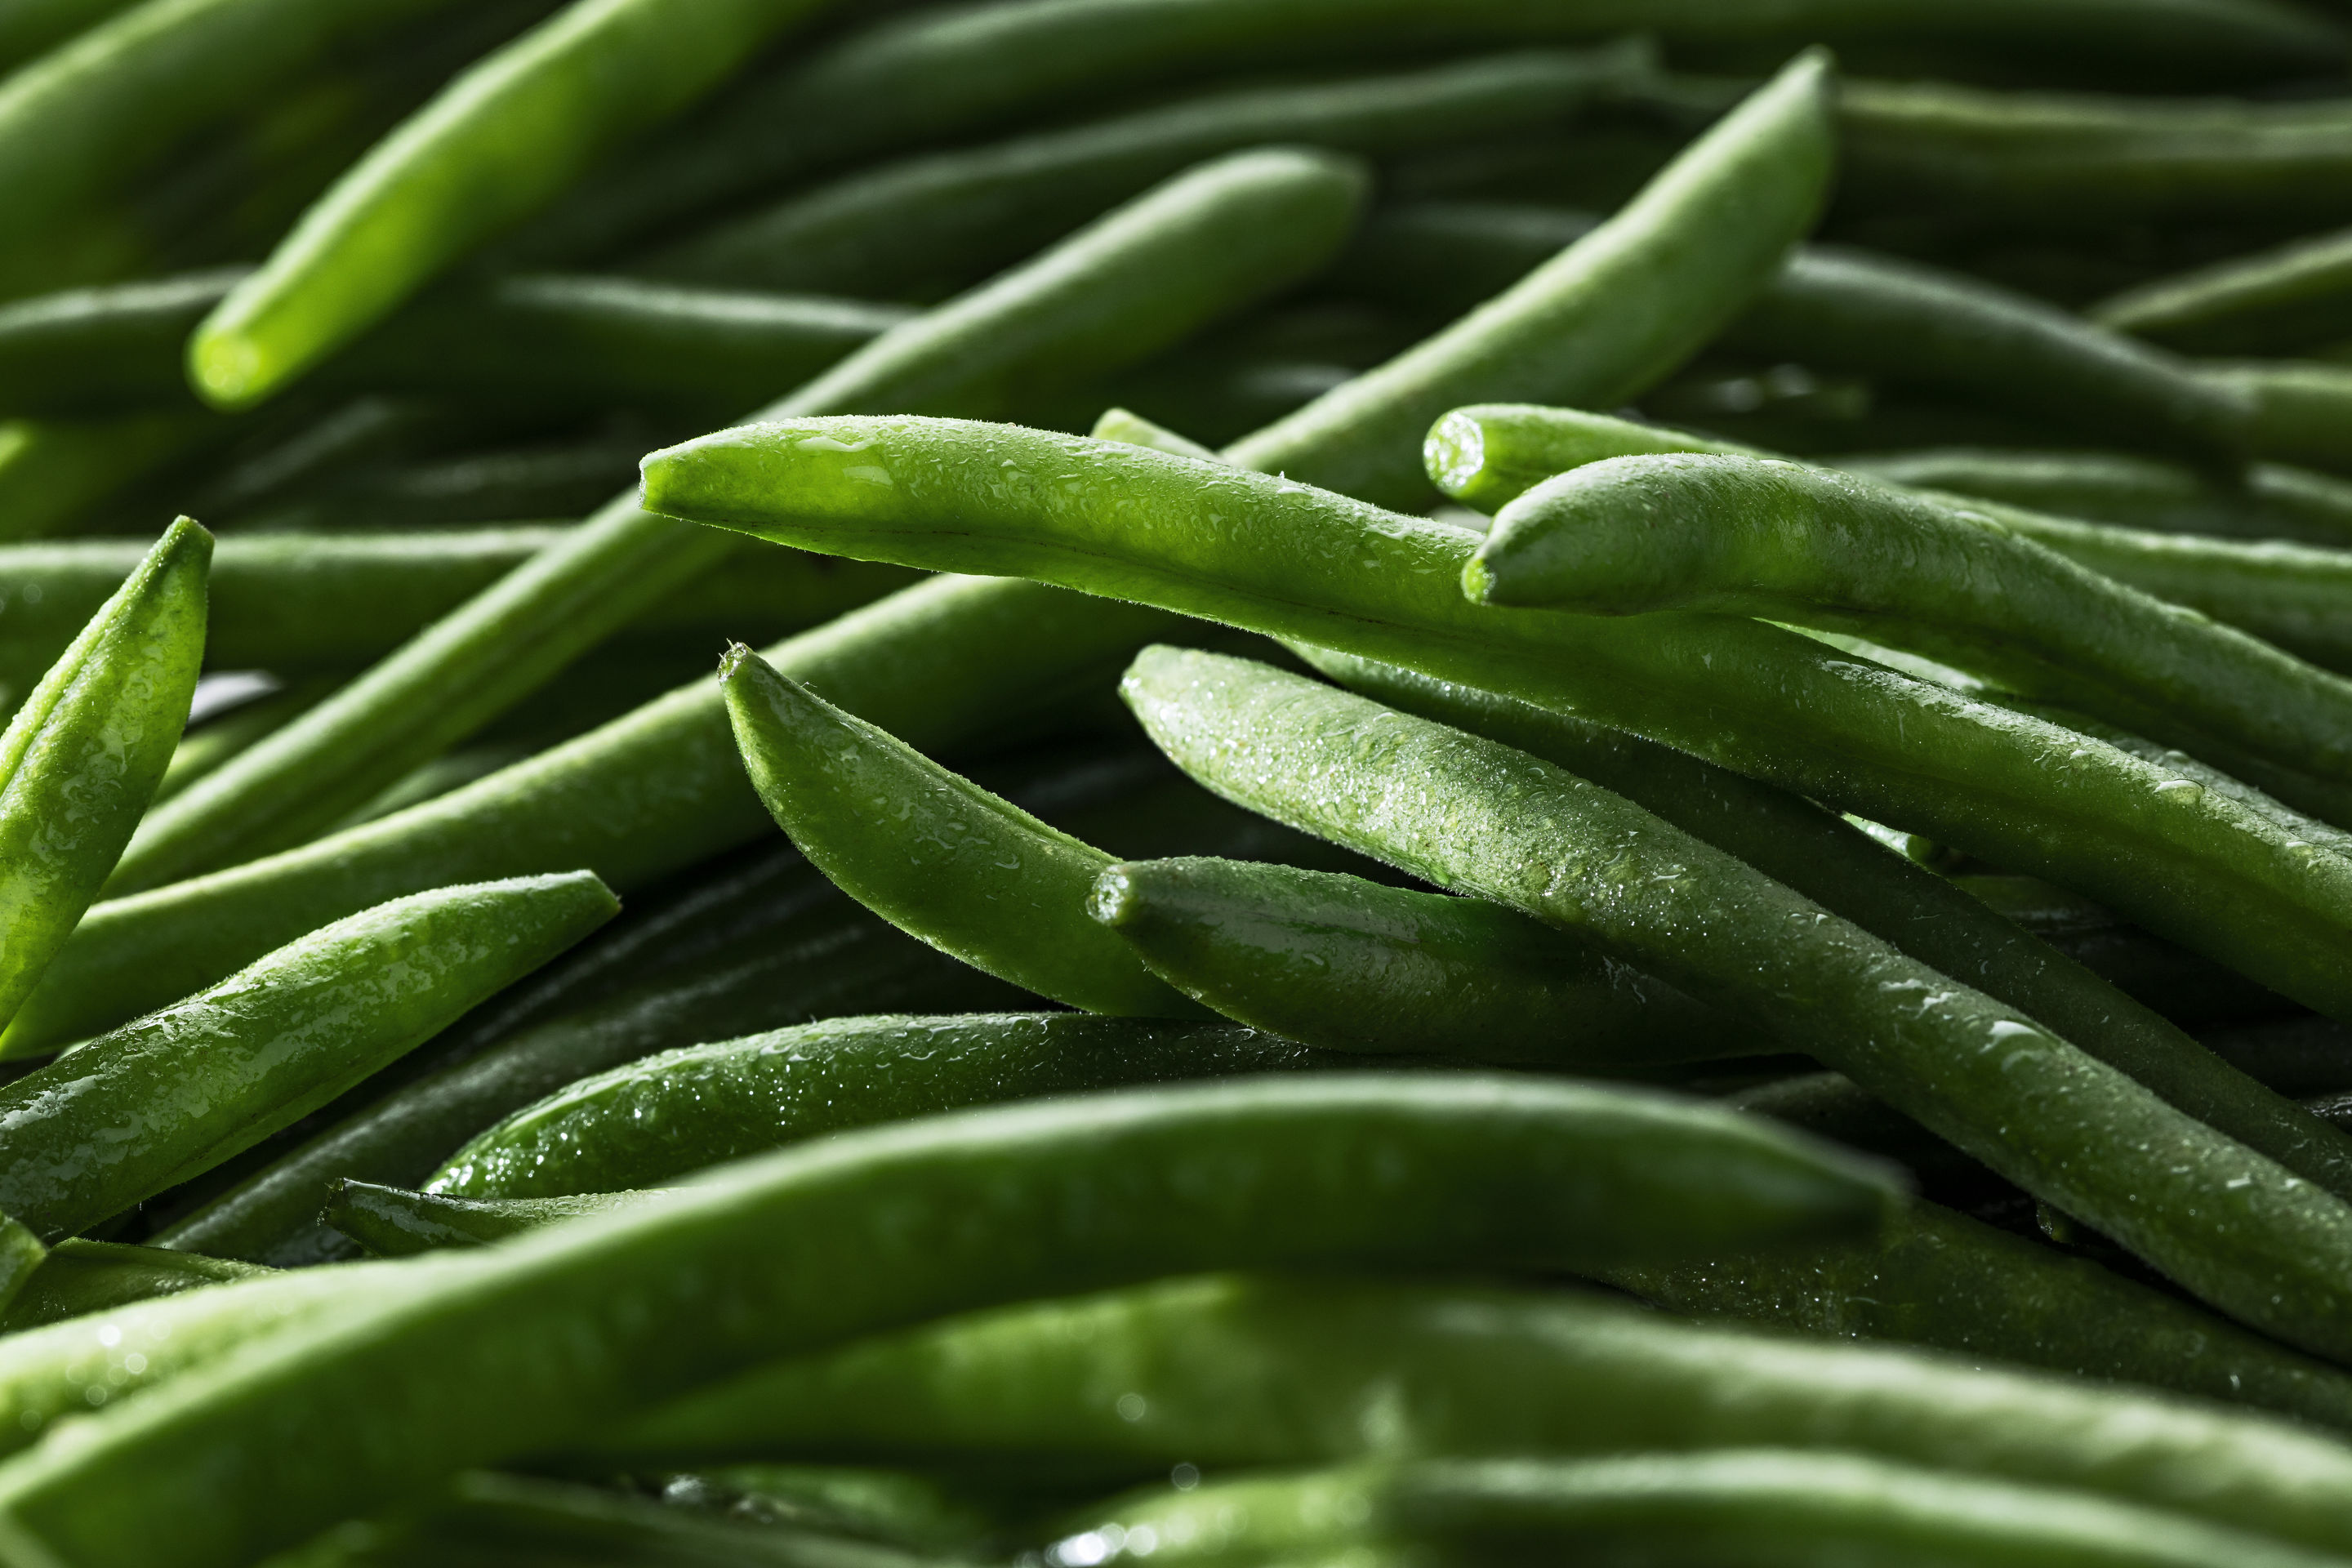 Le haricot vert cueilli main EXTRA-FIN